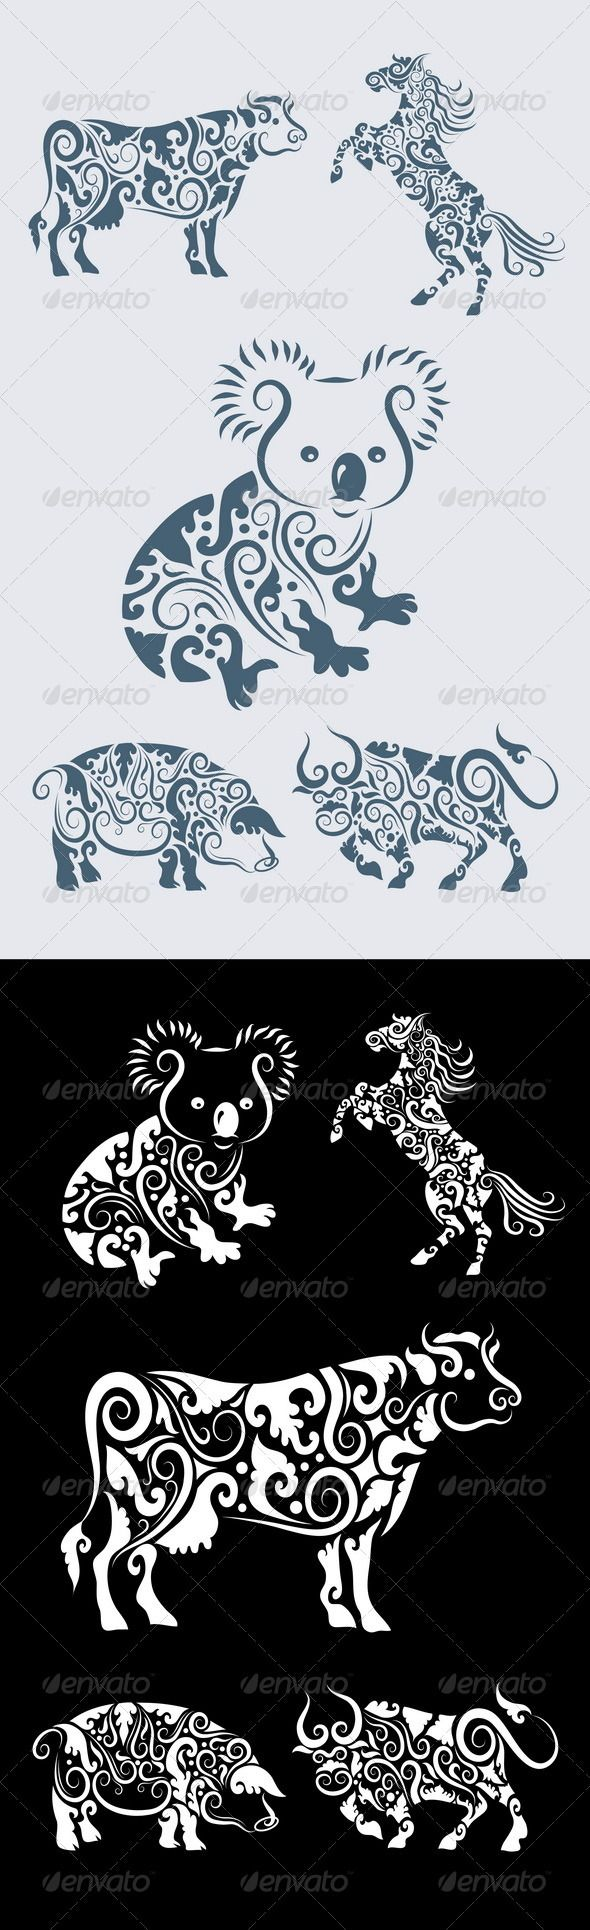 nike free run 2 white black Koala ornament and friends (5 animal ornaments) #GraphicRiver 5 animals with floral ornament decoration. Use for tattoo, t-shirt or any design you … | Pinteres…